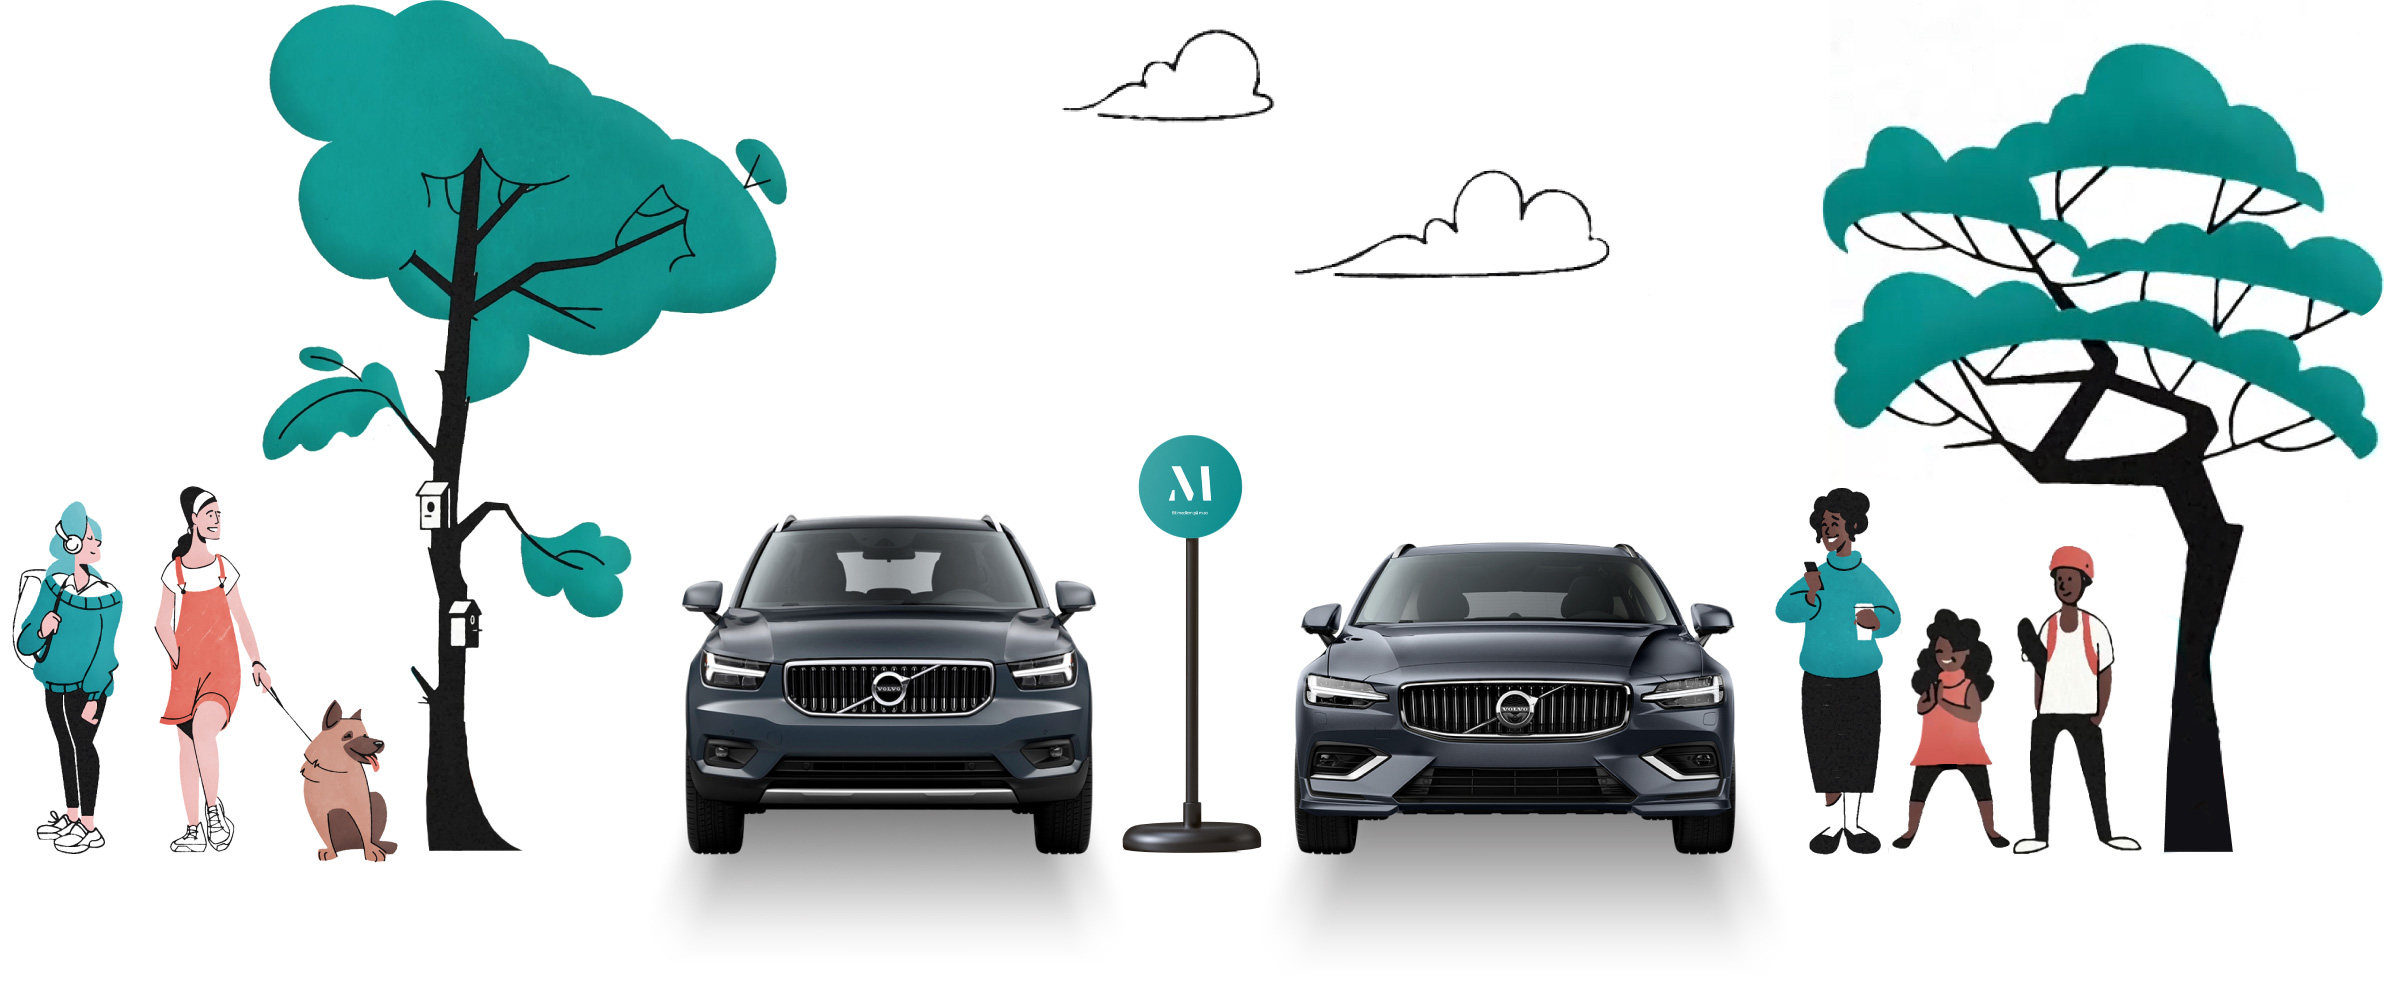 Illustration of two Volvo cars parked next to trees with people standing by